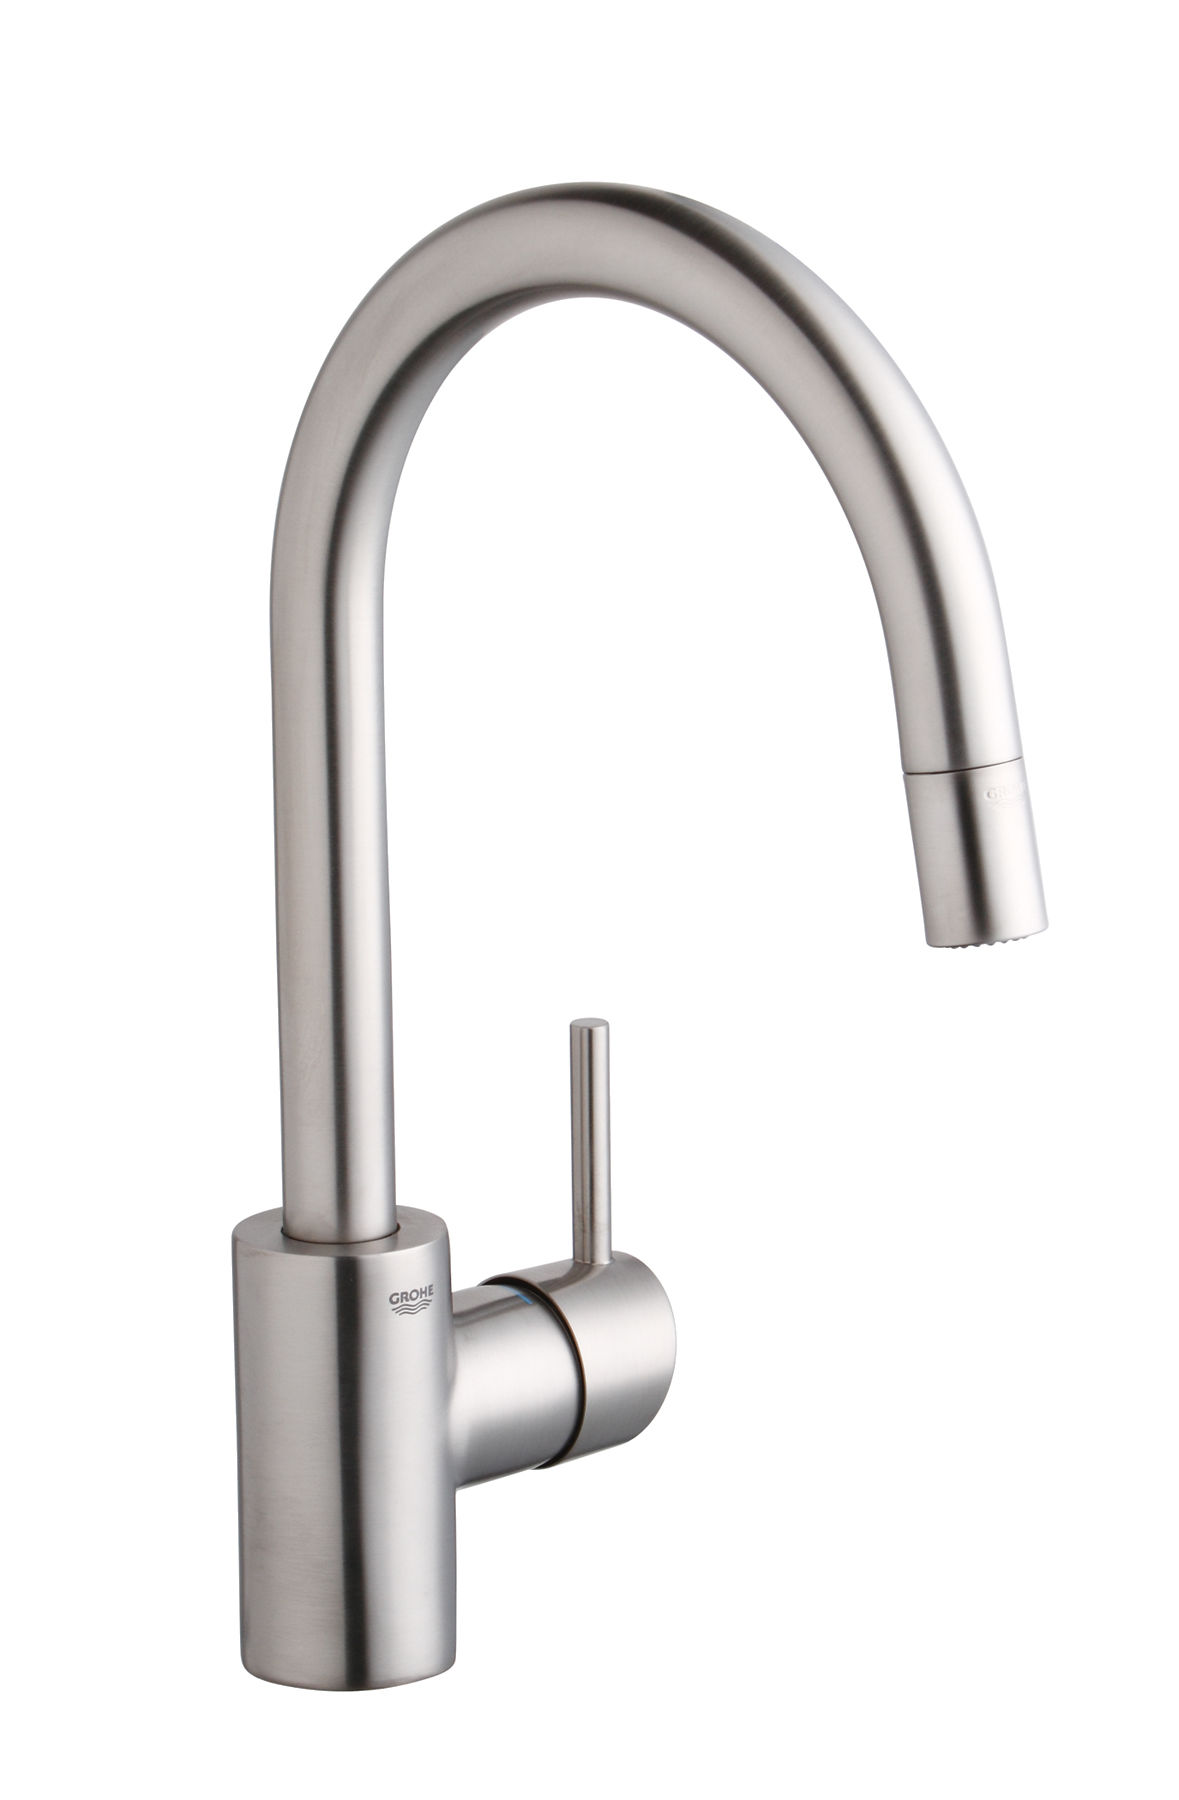 f grohe kitchen faucet parts Grohe Starlight Chrome Concetto Pull Down High Arc Kitchen Faucet with Single Function Locking Sprayer Faucet com